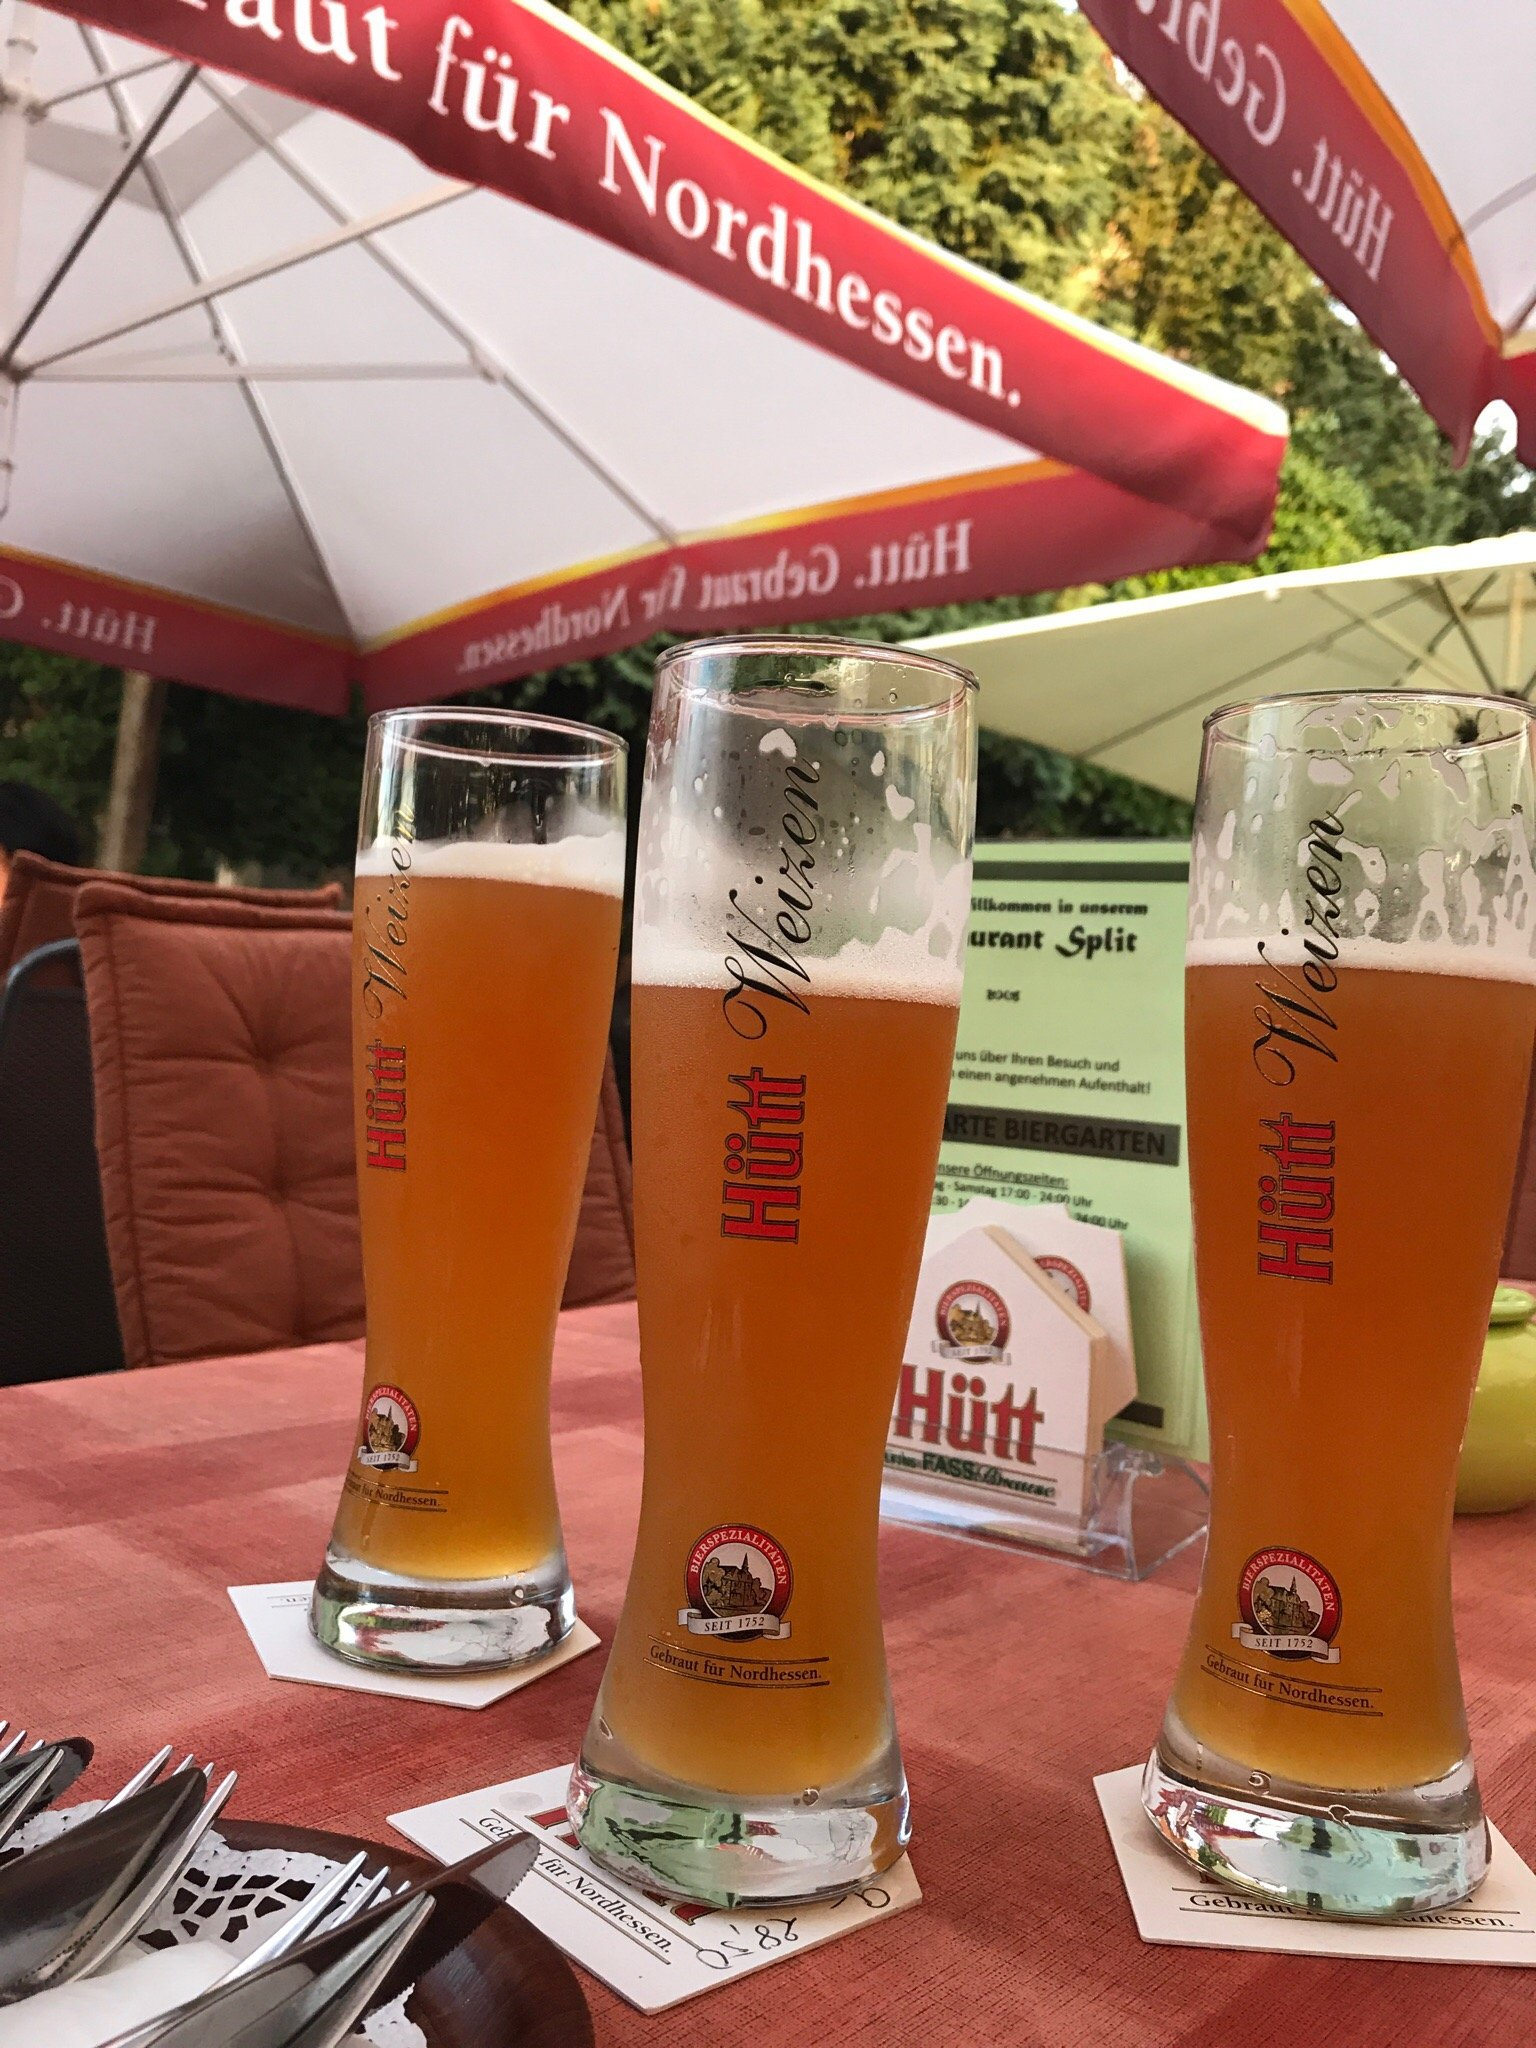 Things To Do in German, Restaurants in German